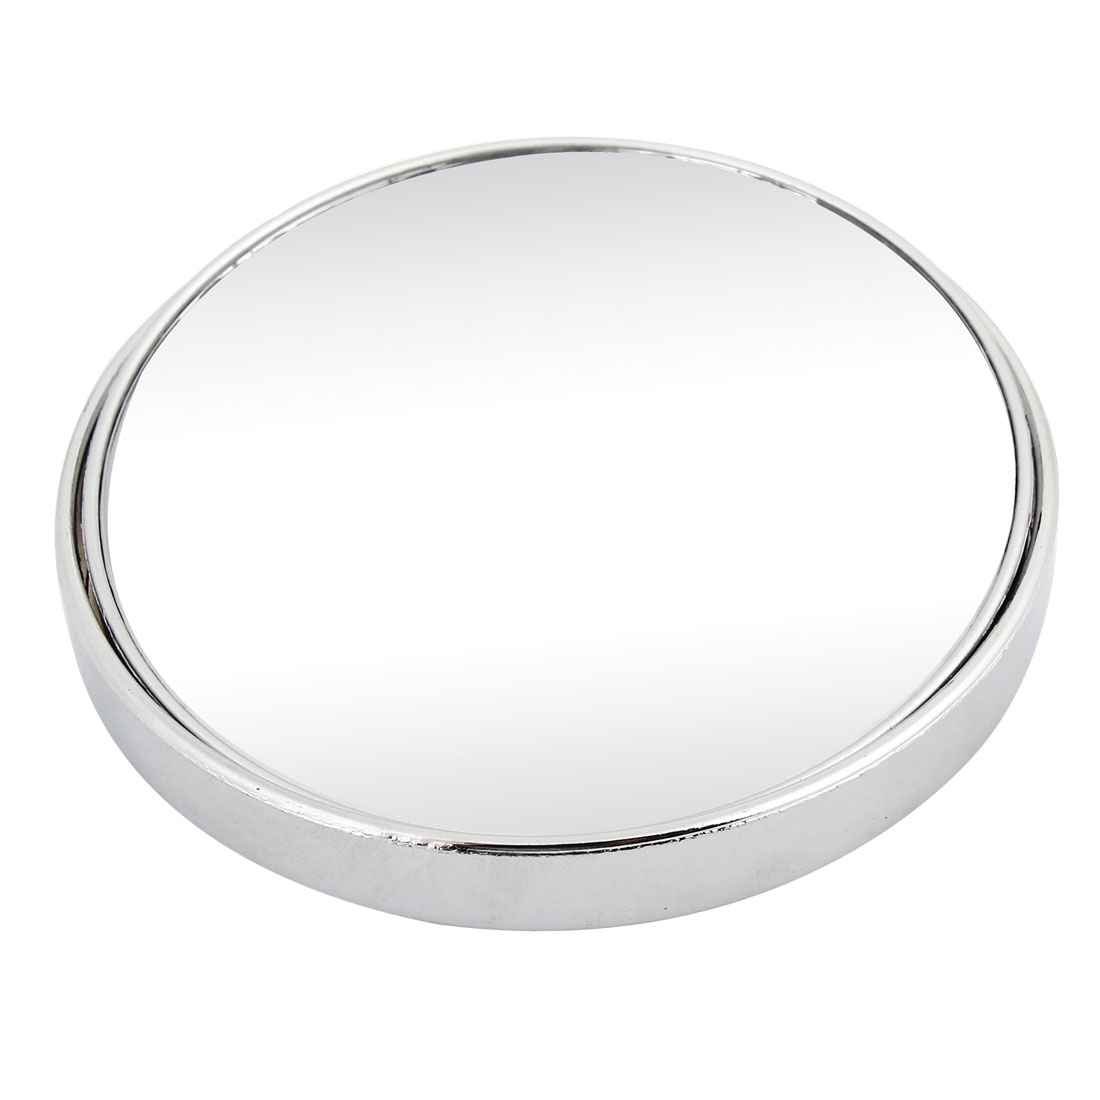 Universal Car Silver Tone 98mm Dia Round Wide Angle Convex Blind Spot Mirror